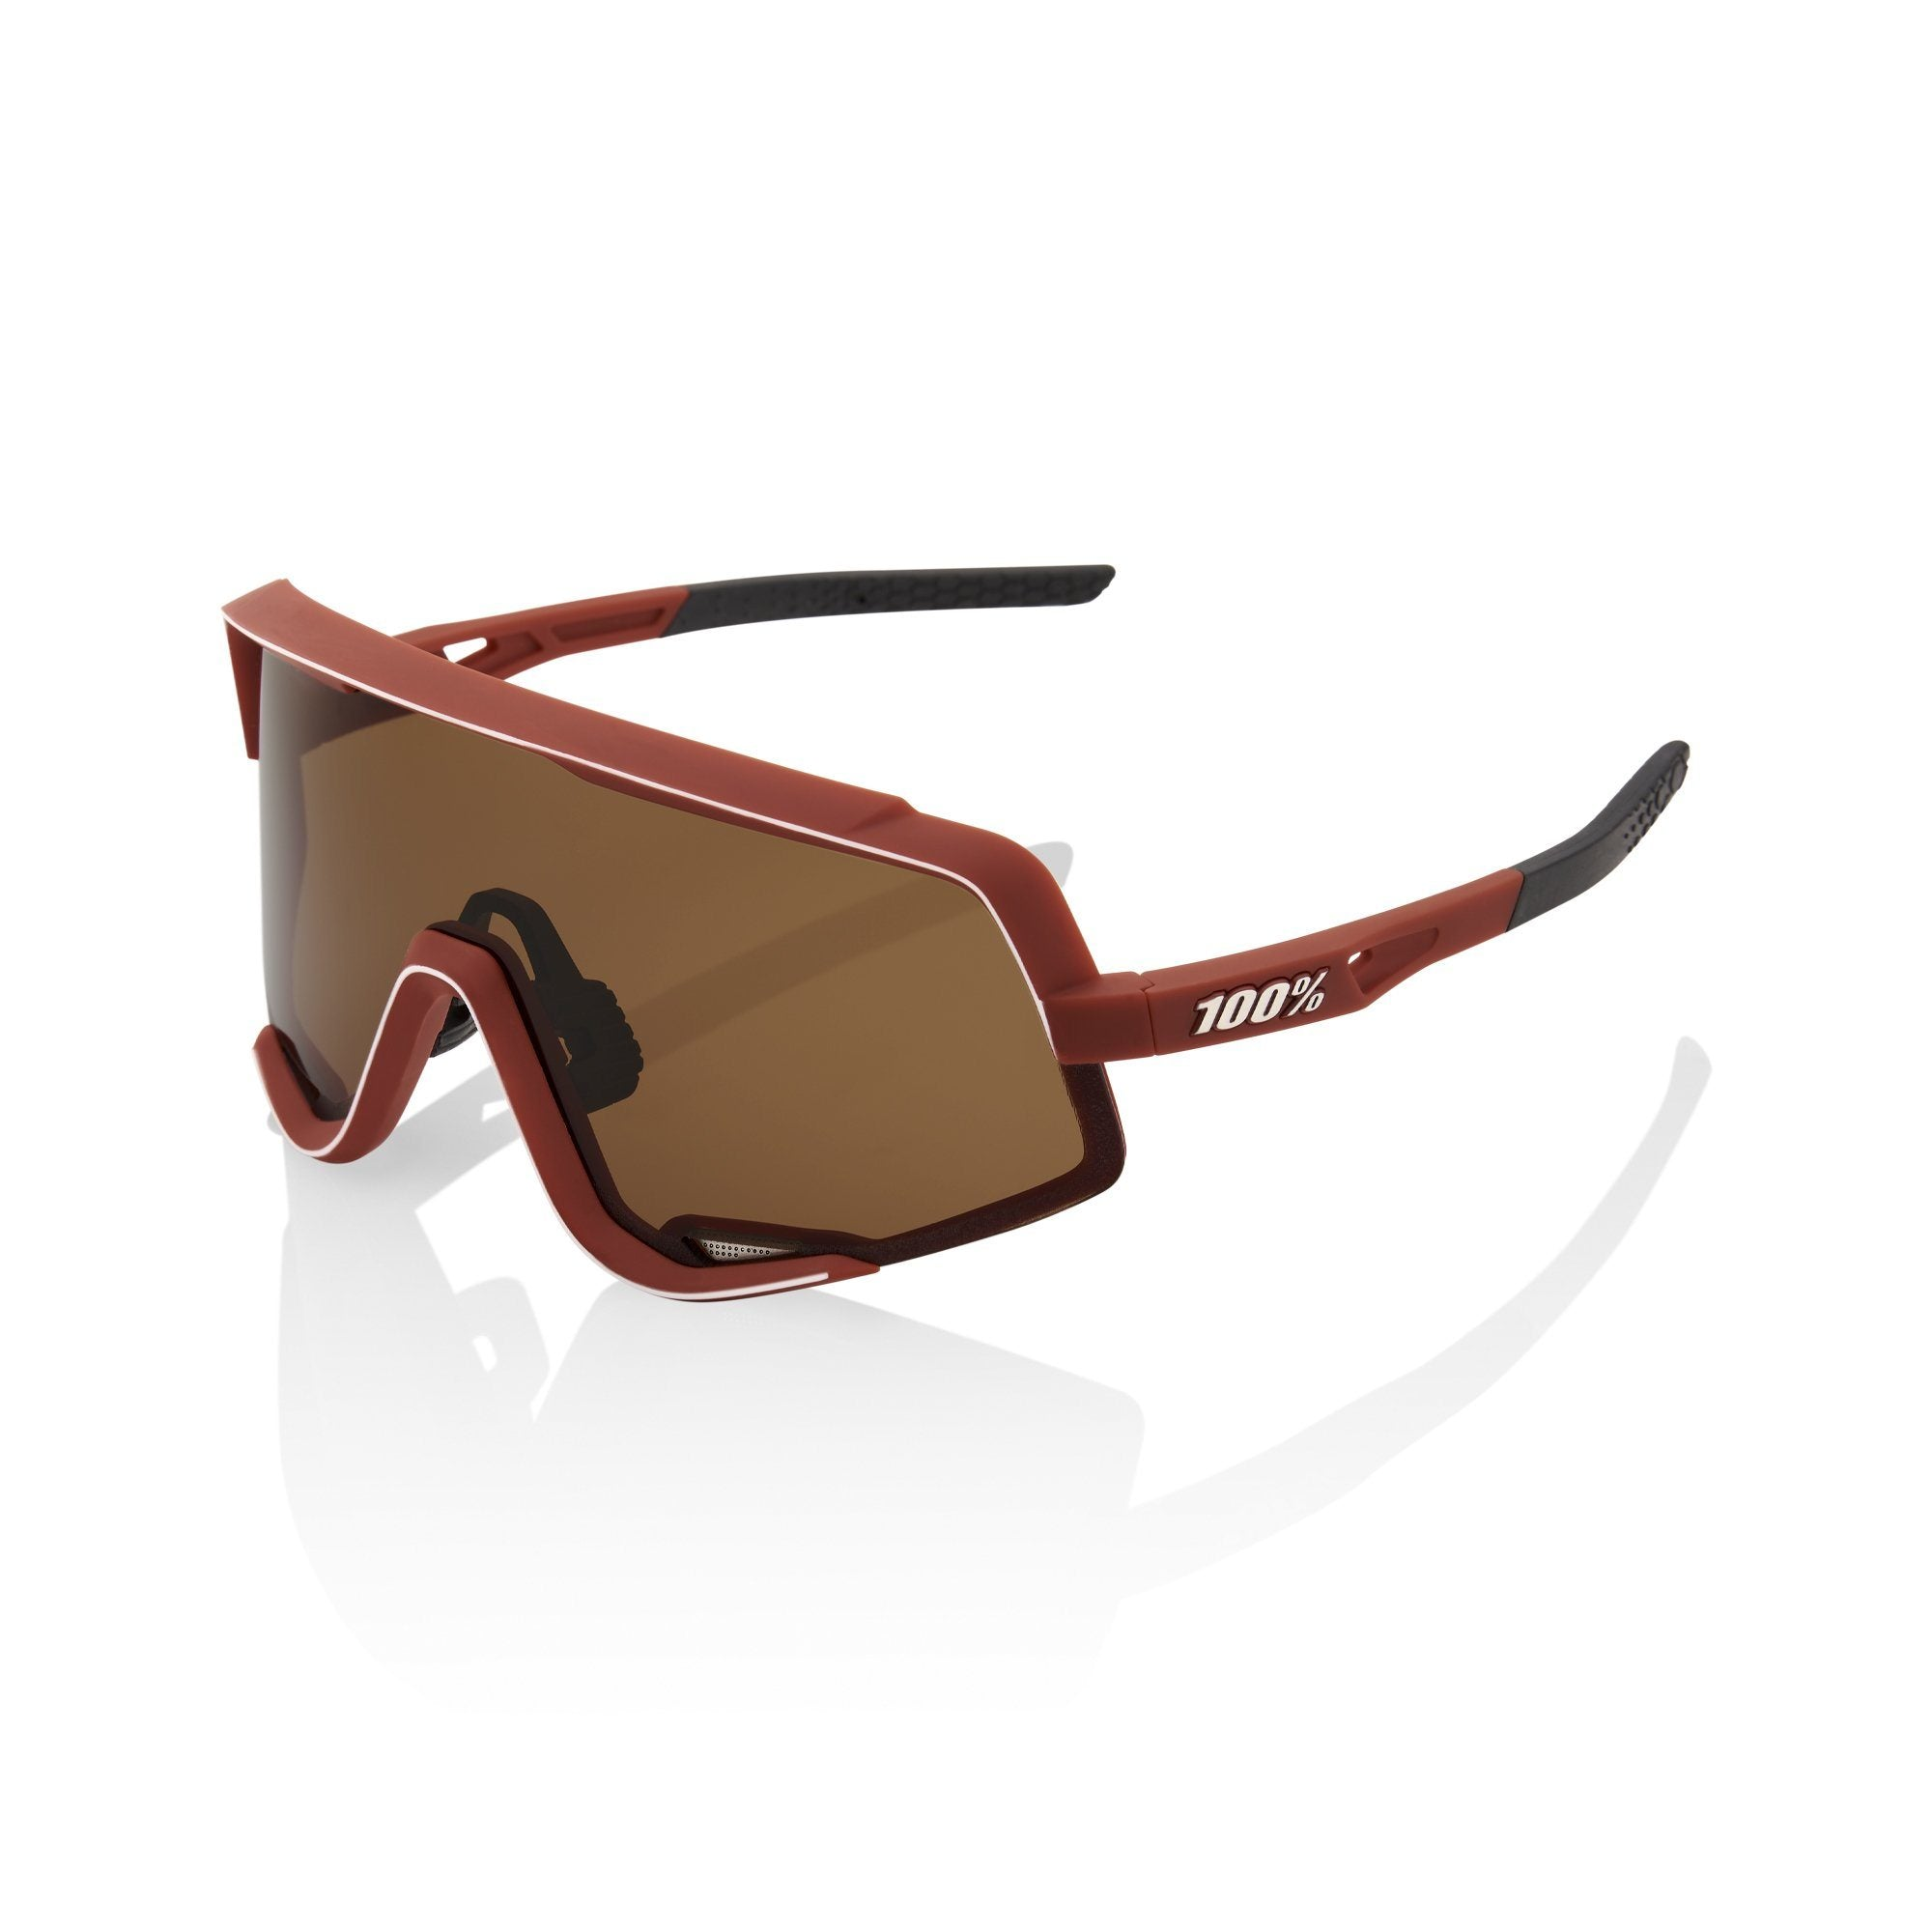 100% Glendale Sunglasses - Soft Tact Bordeaux with Bronze Lens